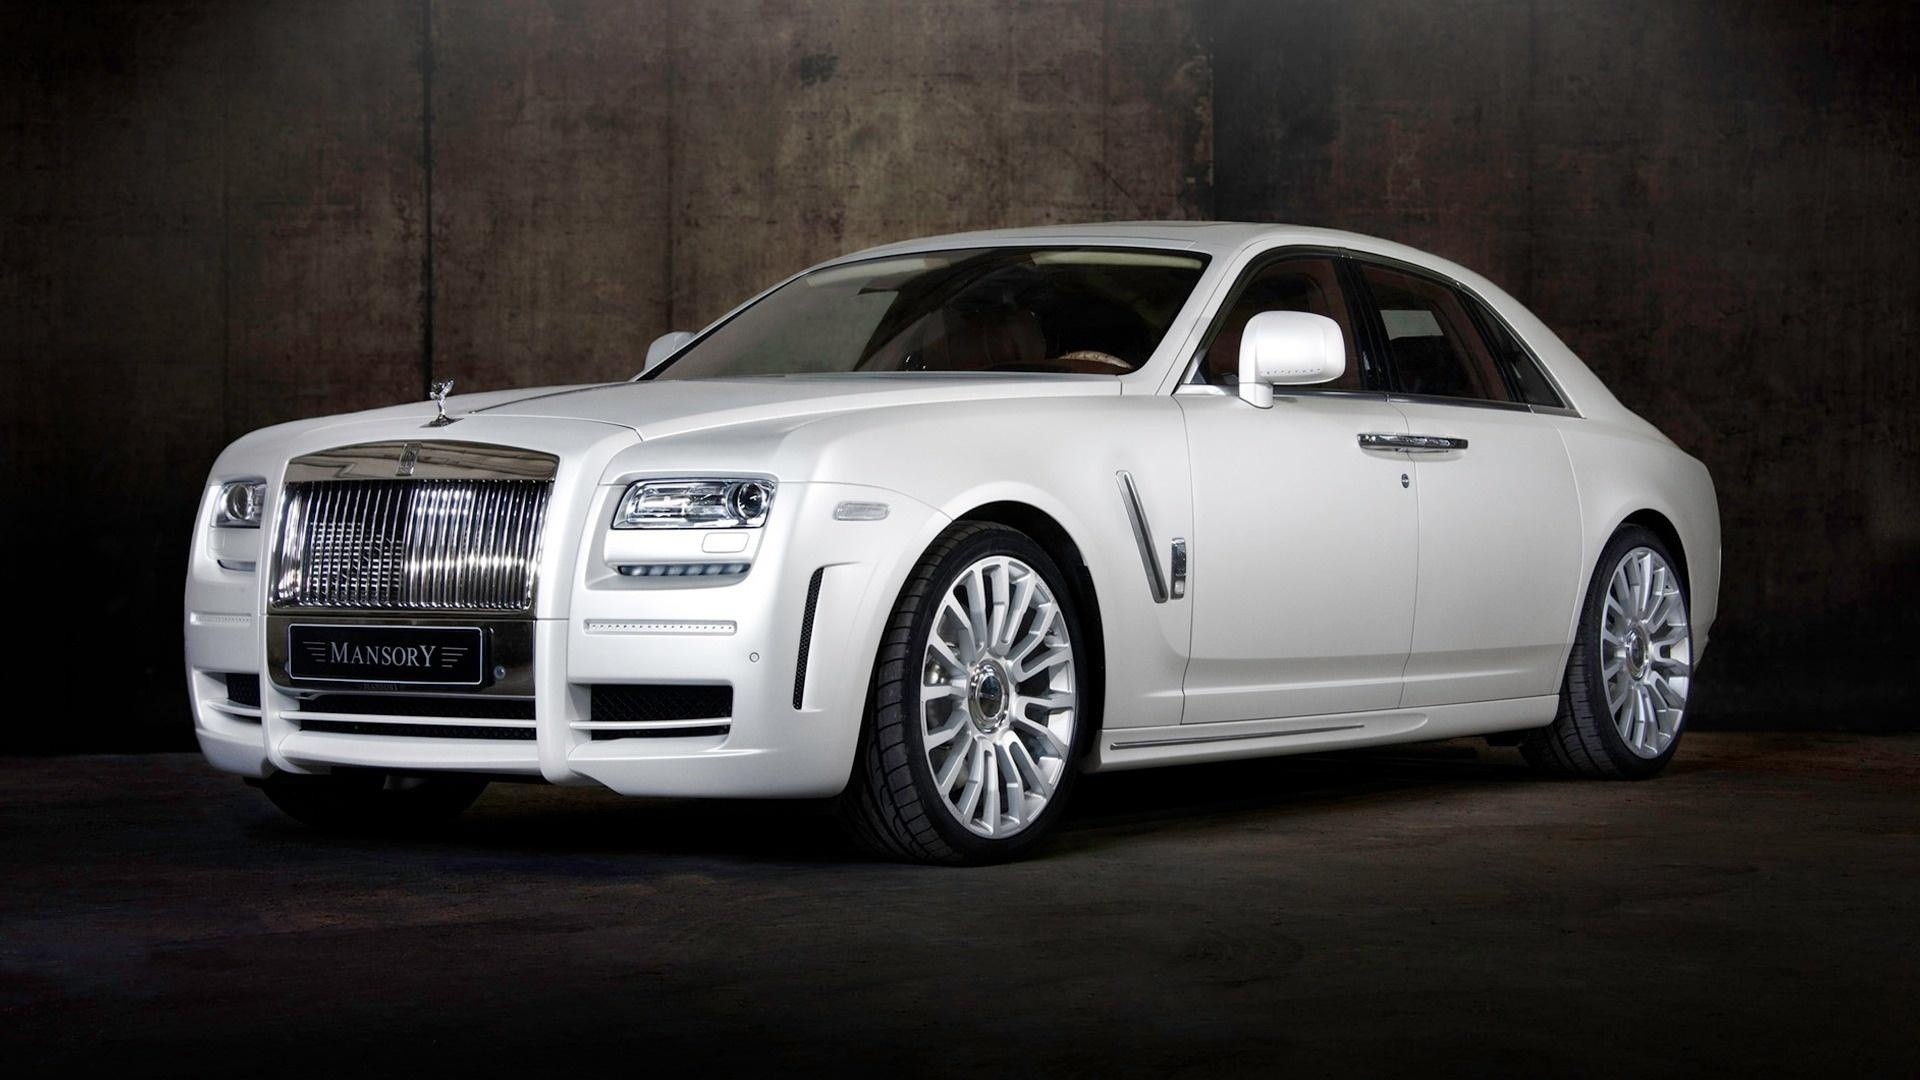 Rolls royce cars 23 background for Rolls royce auto